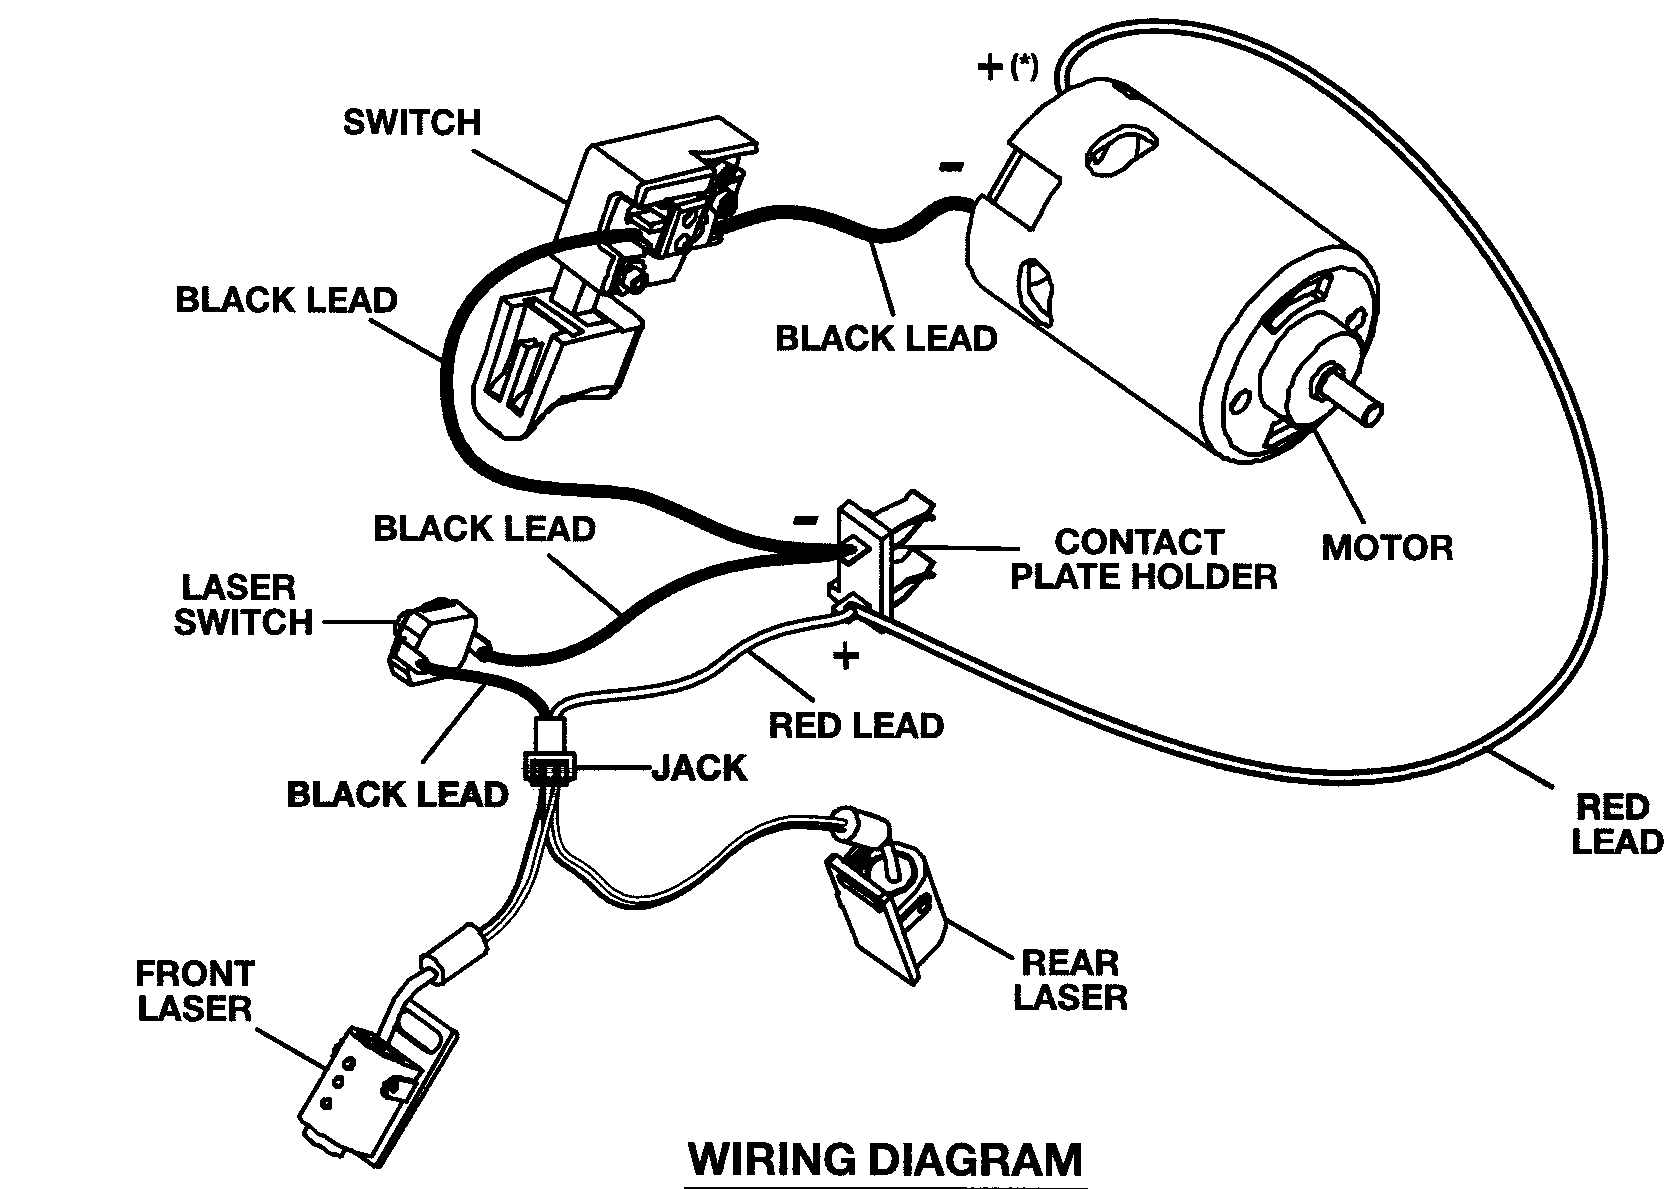 Wiring Diagram For Sears Air Compressor. Sears 5 Hp